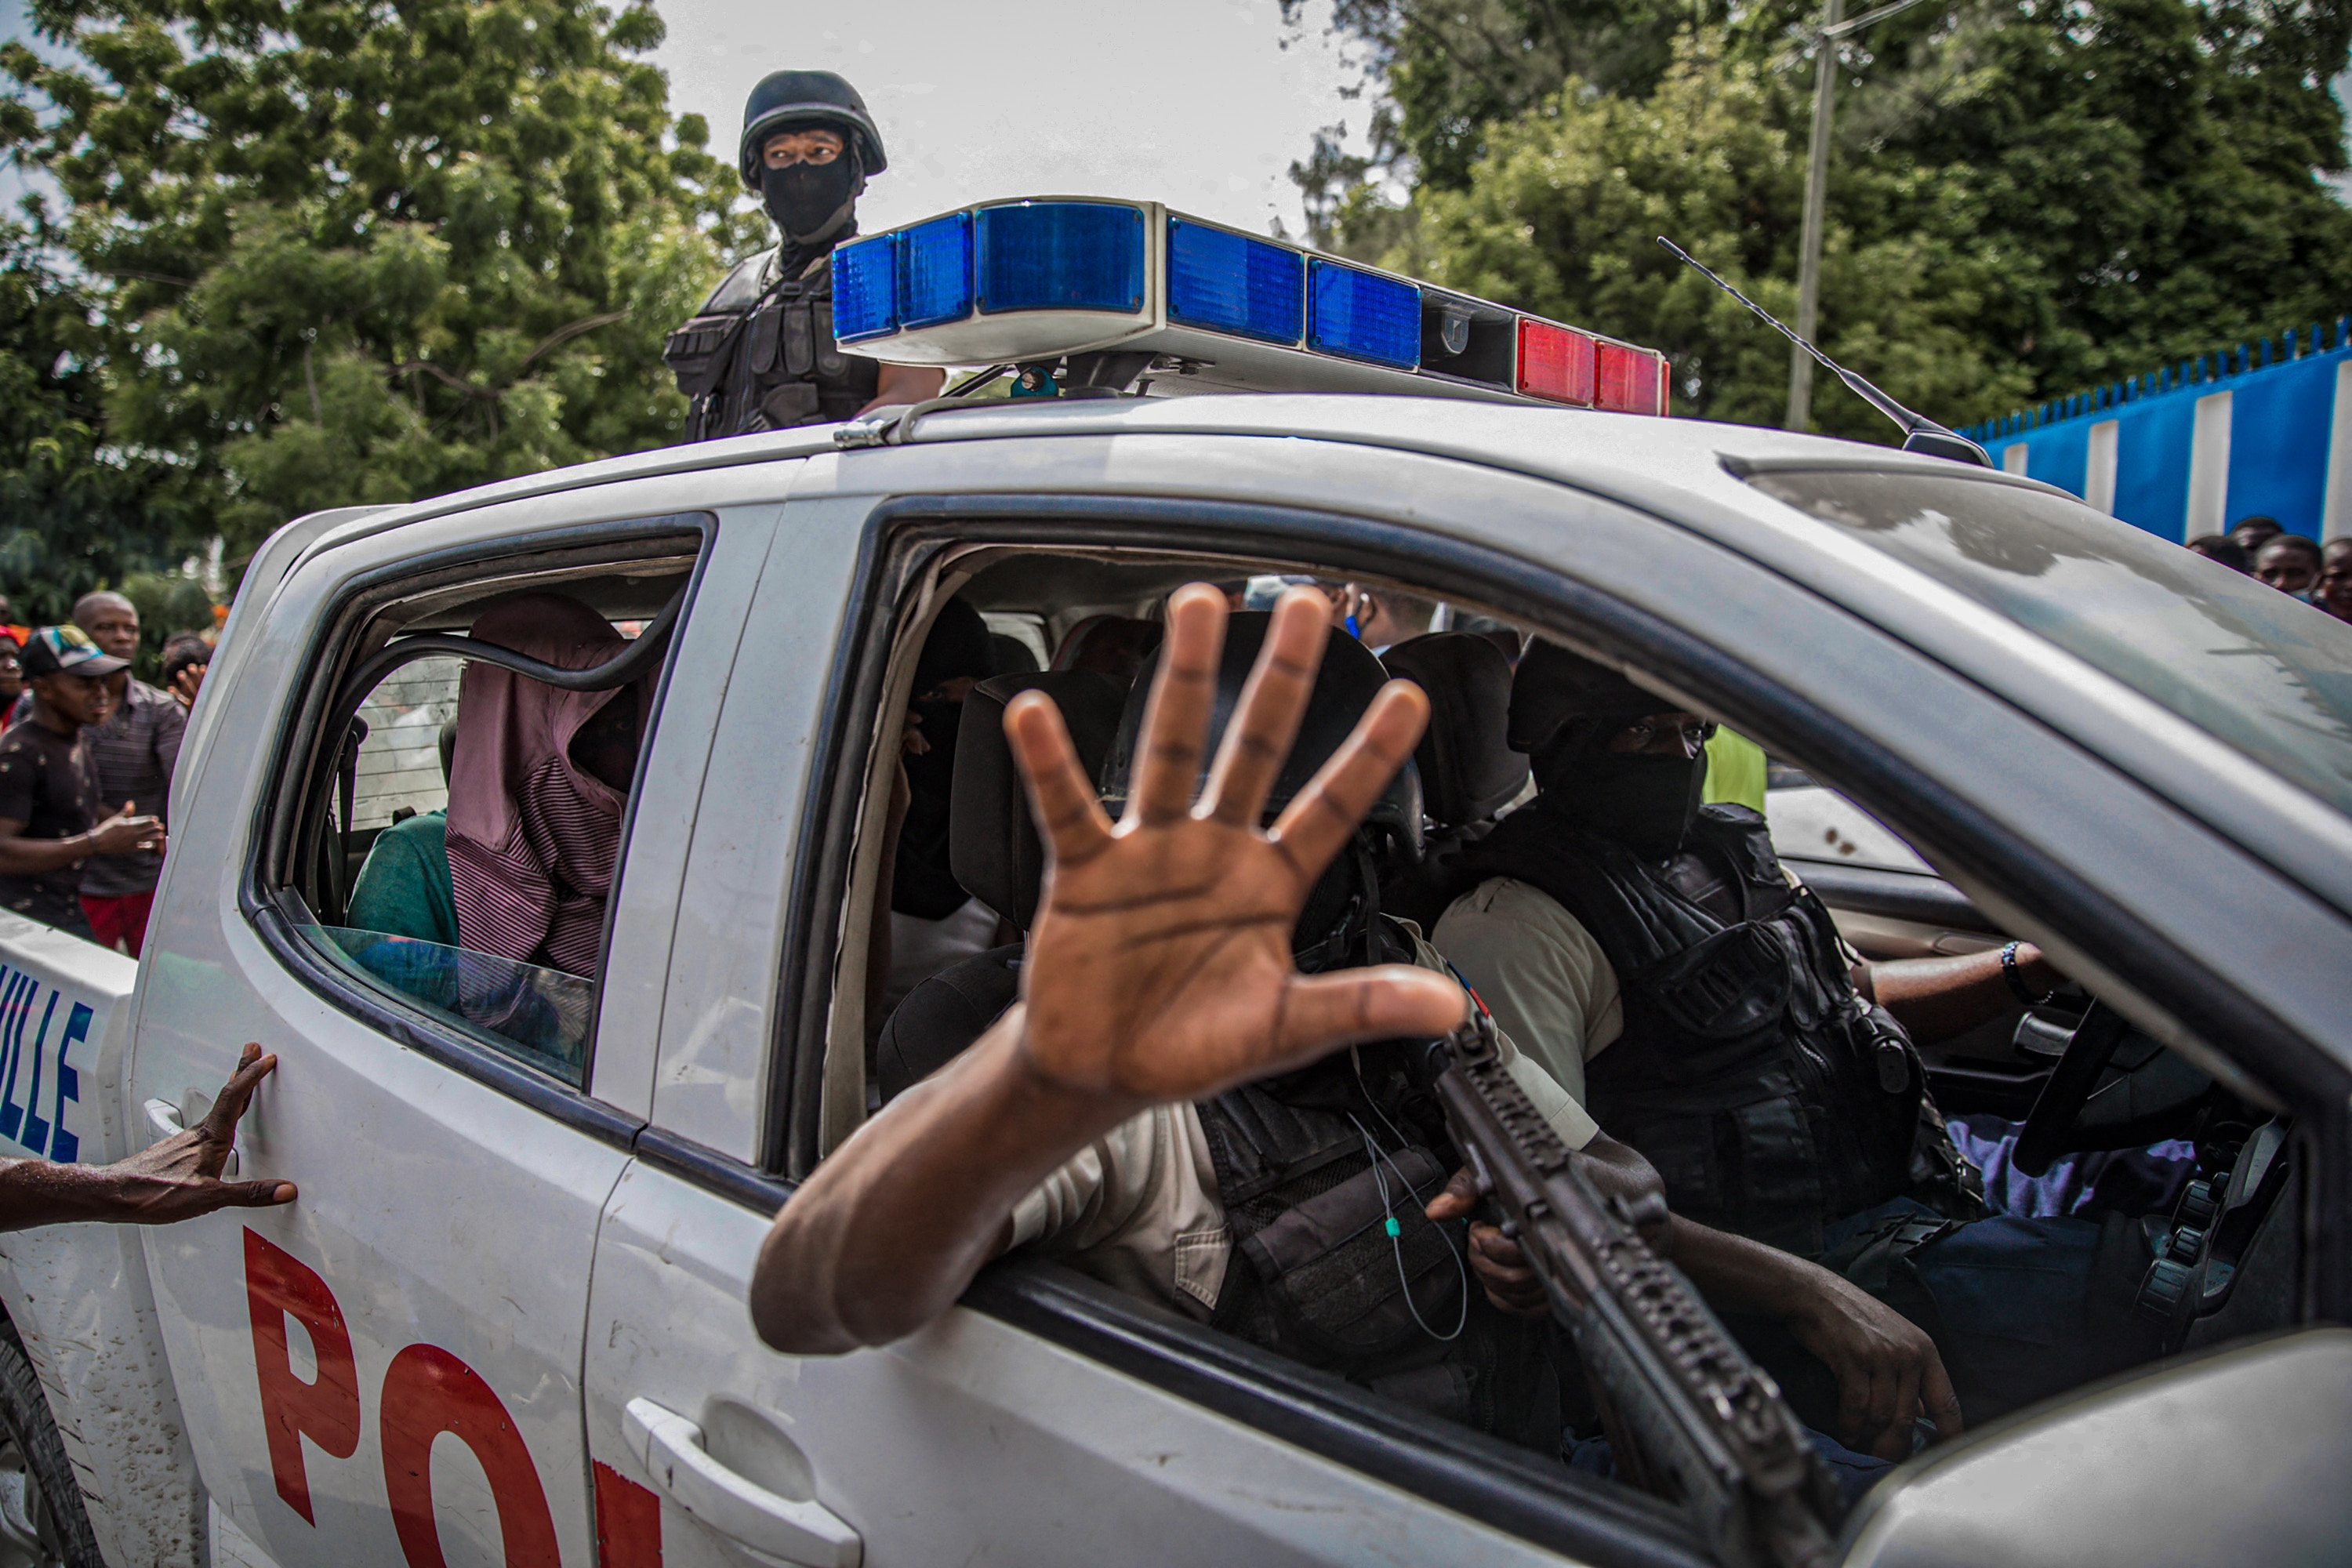 TOPSHOT - Two men, accused of being involved in the assassination of President Jovenel Moise, are being transported to the Petionville station in a police car in Port au Prince on July 8, 2021. - Police in Haiti have surrounded a group of possible suspects in the assassination of President Jovenel Moise, the UN envoy to Haiti said. Helen La Lime said from the Haitian capital that four members of a group that attacked the presidential palace Wednesday and shot the president have been killed by police and six others are in custody. (Photo by Valerie Baeriswyl / AFP) (Photo by VALERIE BAERISWYL/AFP via Getty Images)